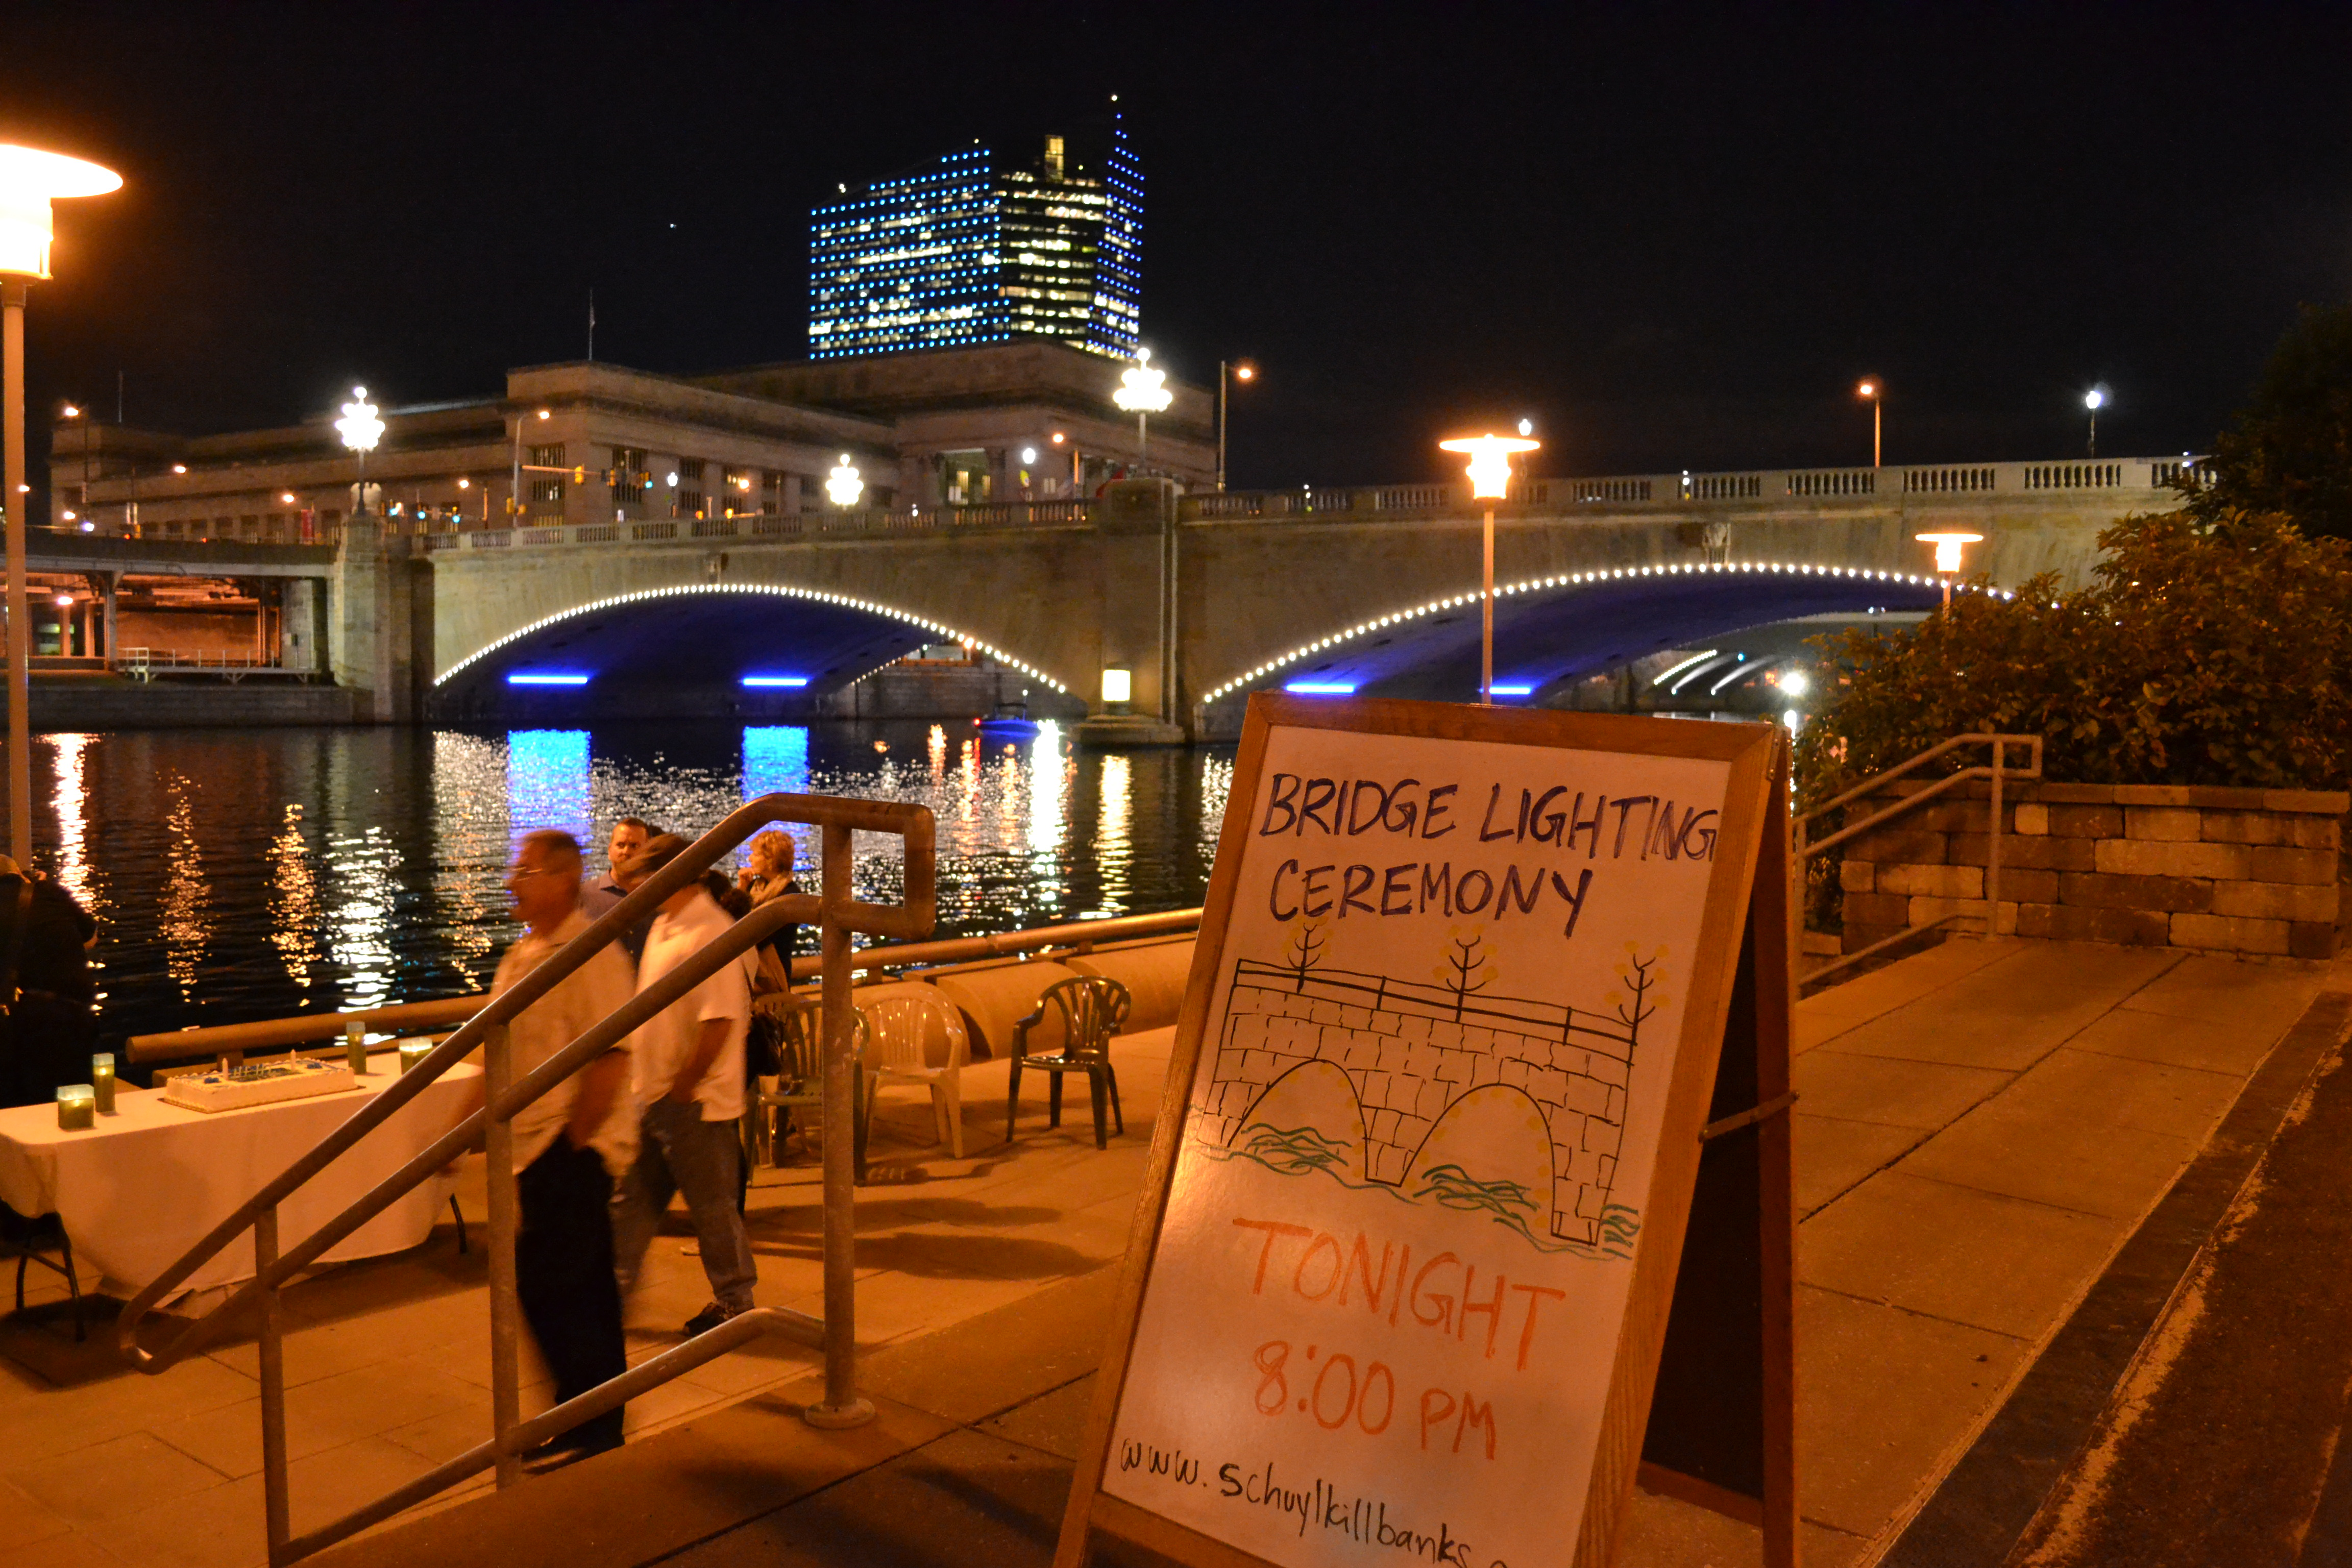 In addition to the bridge lighting, festivities included dessert and a stroll along the trail